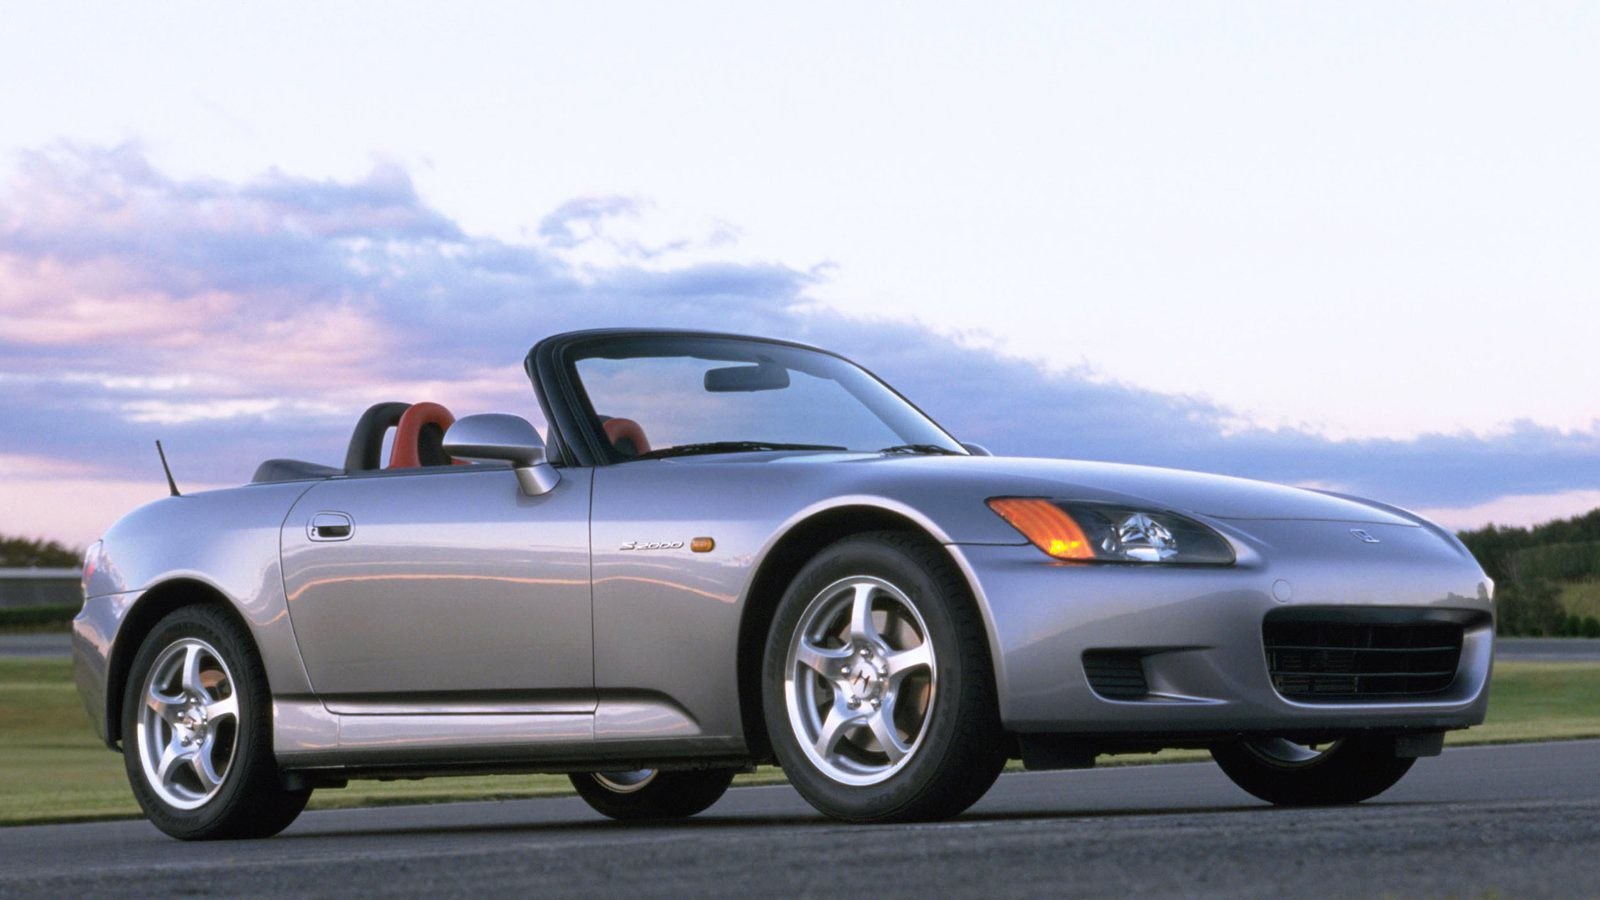 Things we wish we'd known before driving an S2000